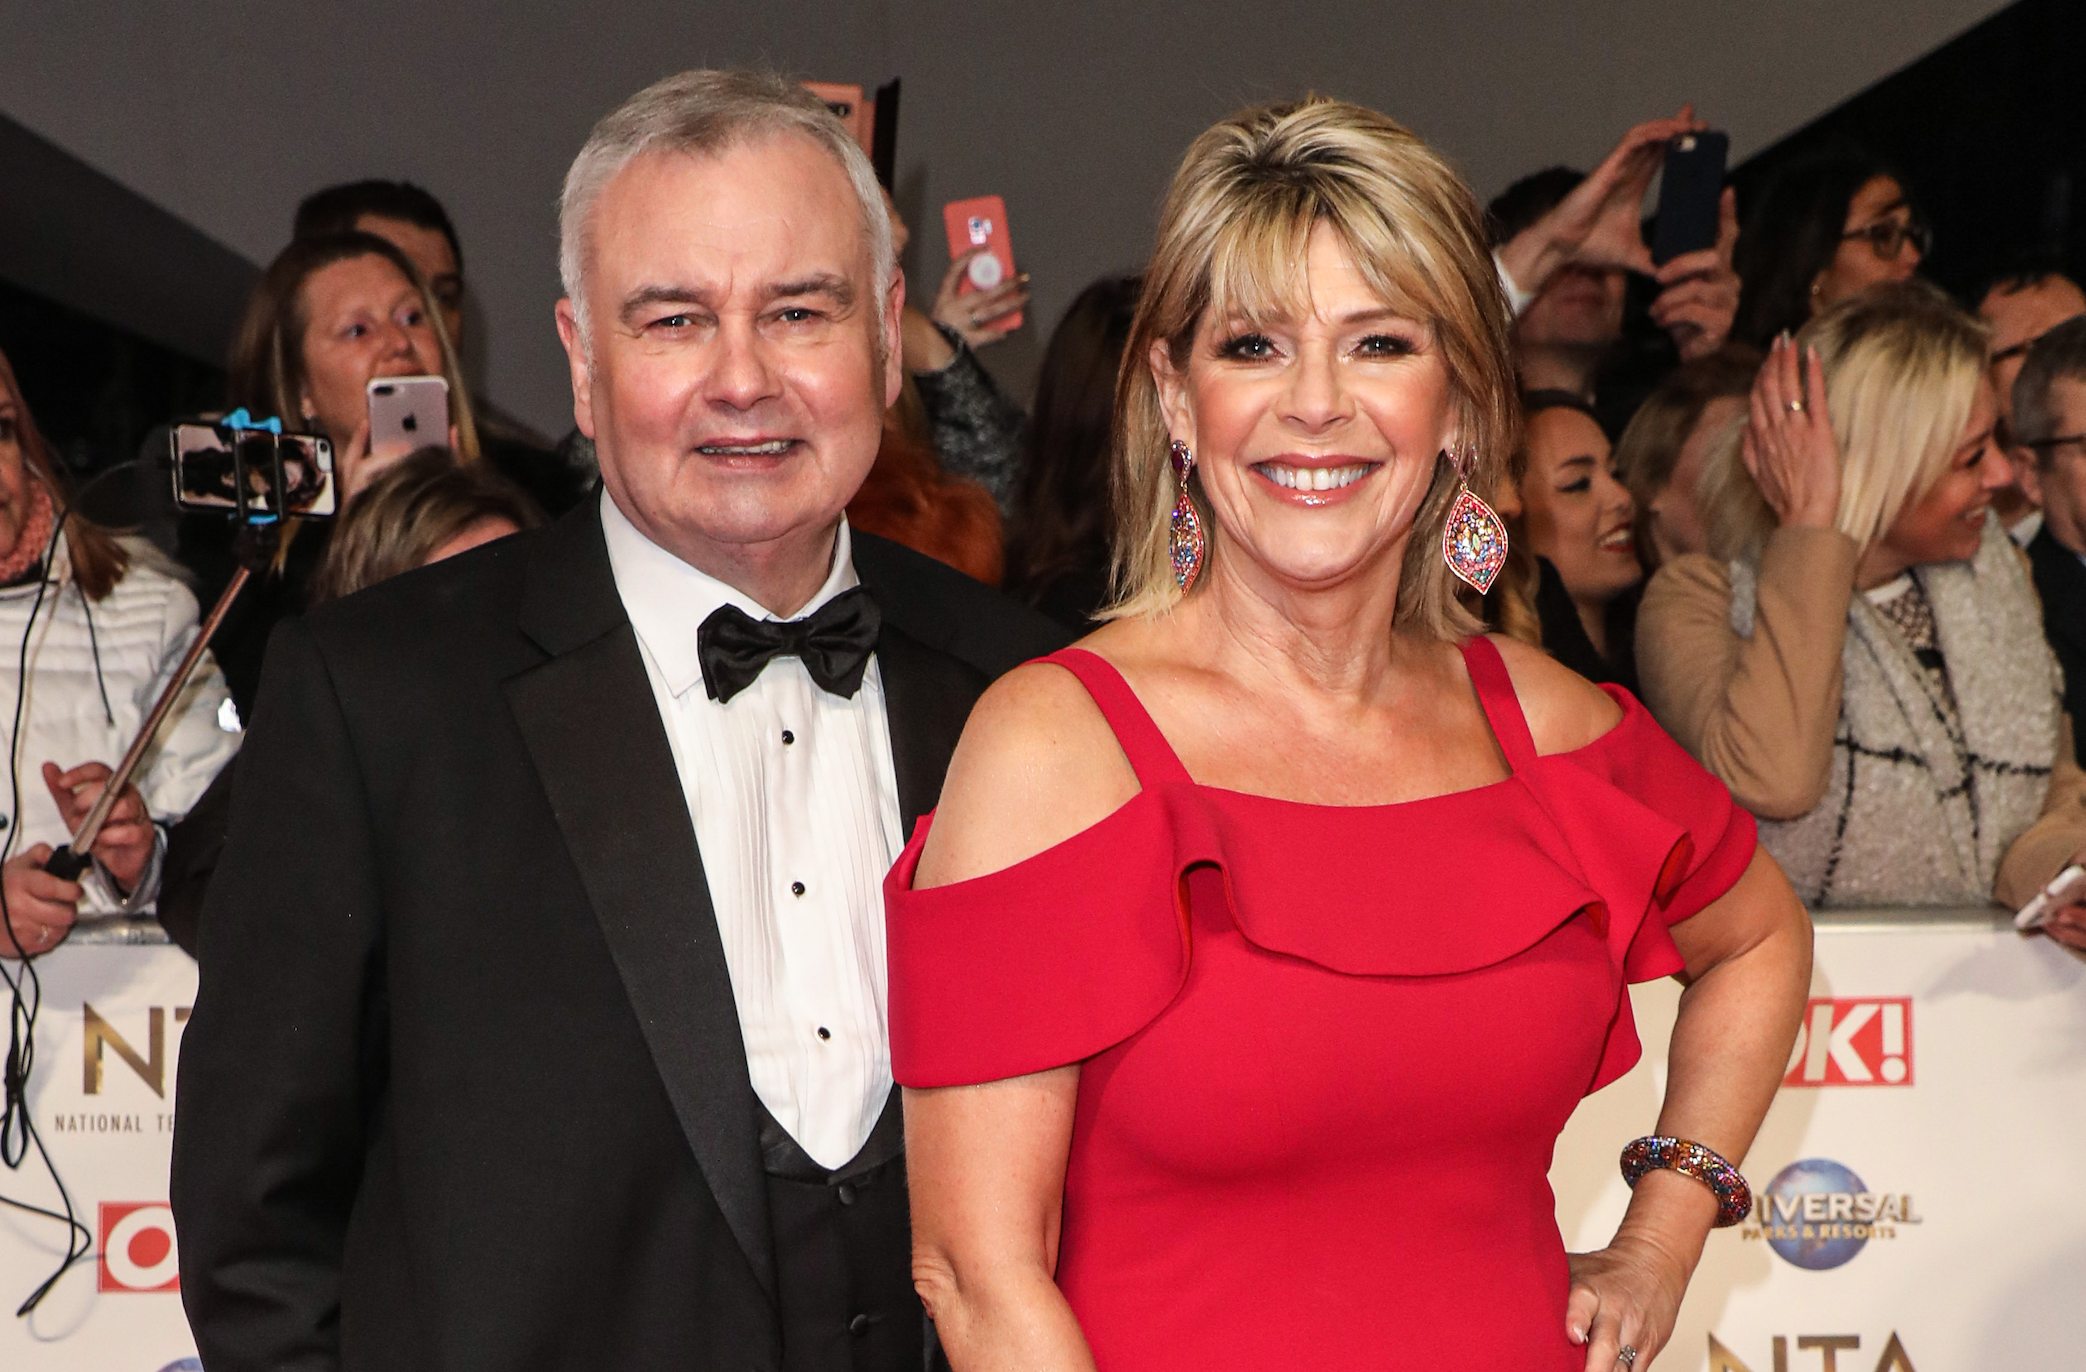 Ruth Langsford puts coronavirus 'criticism' behind her as she walks beloved dog